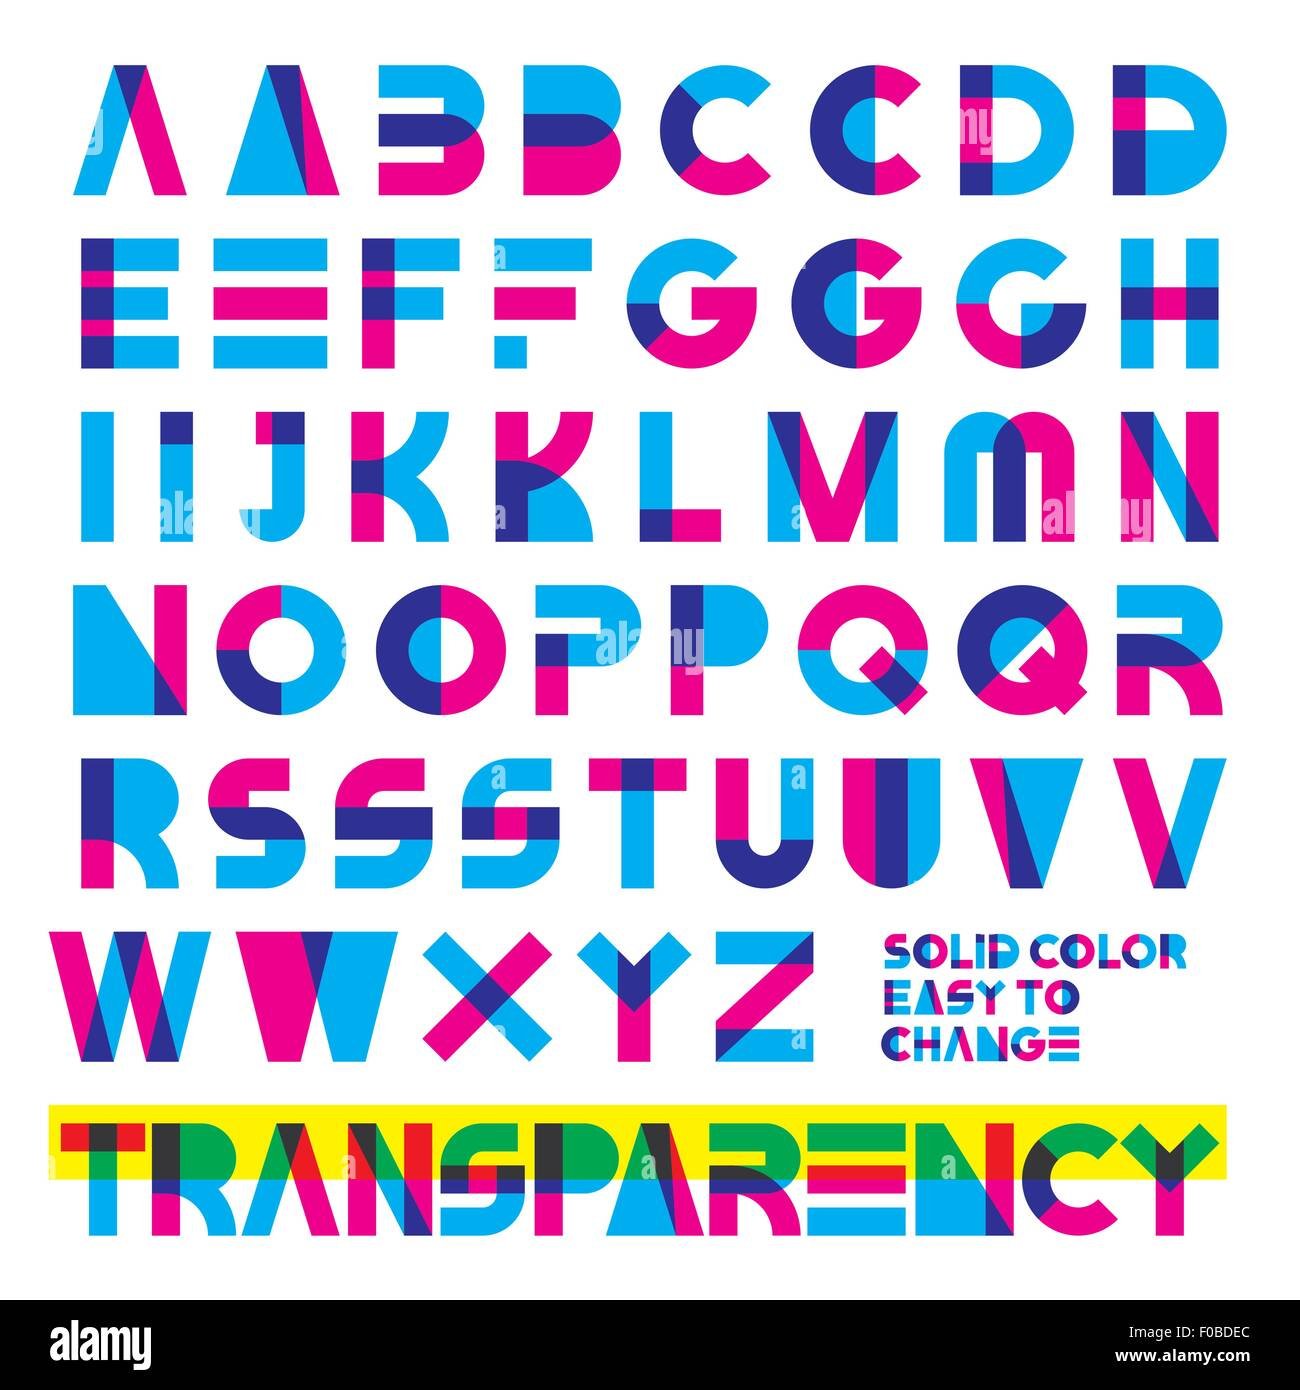 typeset in primary colors transparency solid colors easy to change. - Stock Image